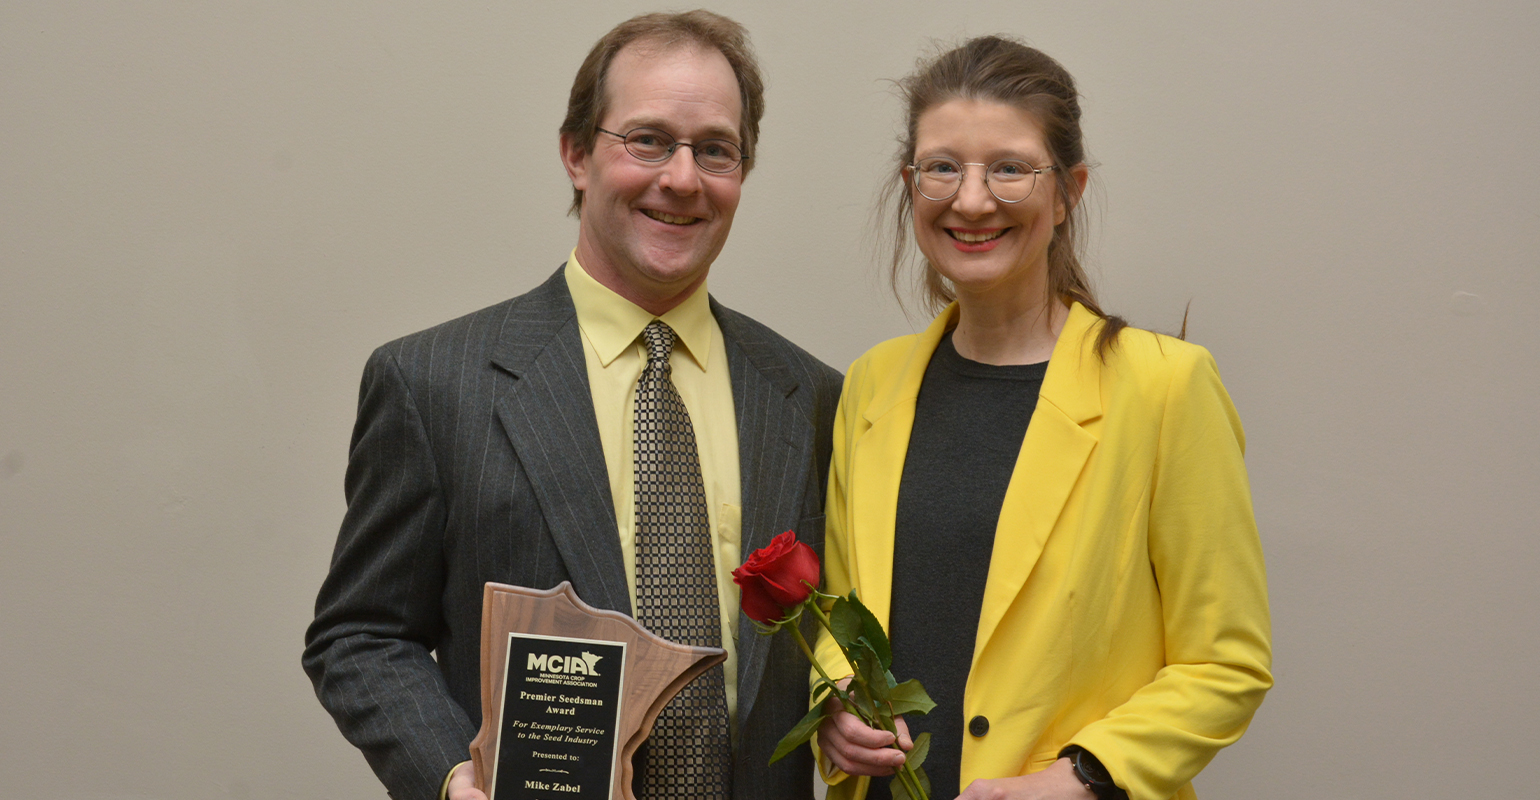 Mike Zabel and wife Kim received award from MCIA